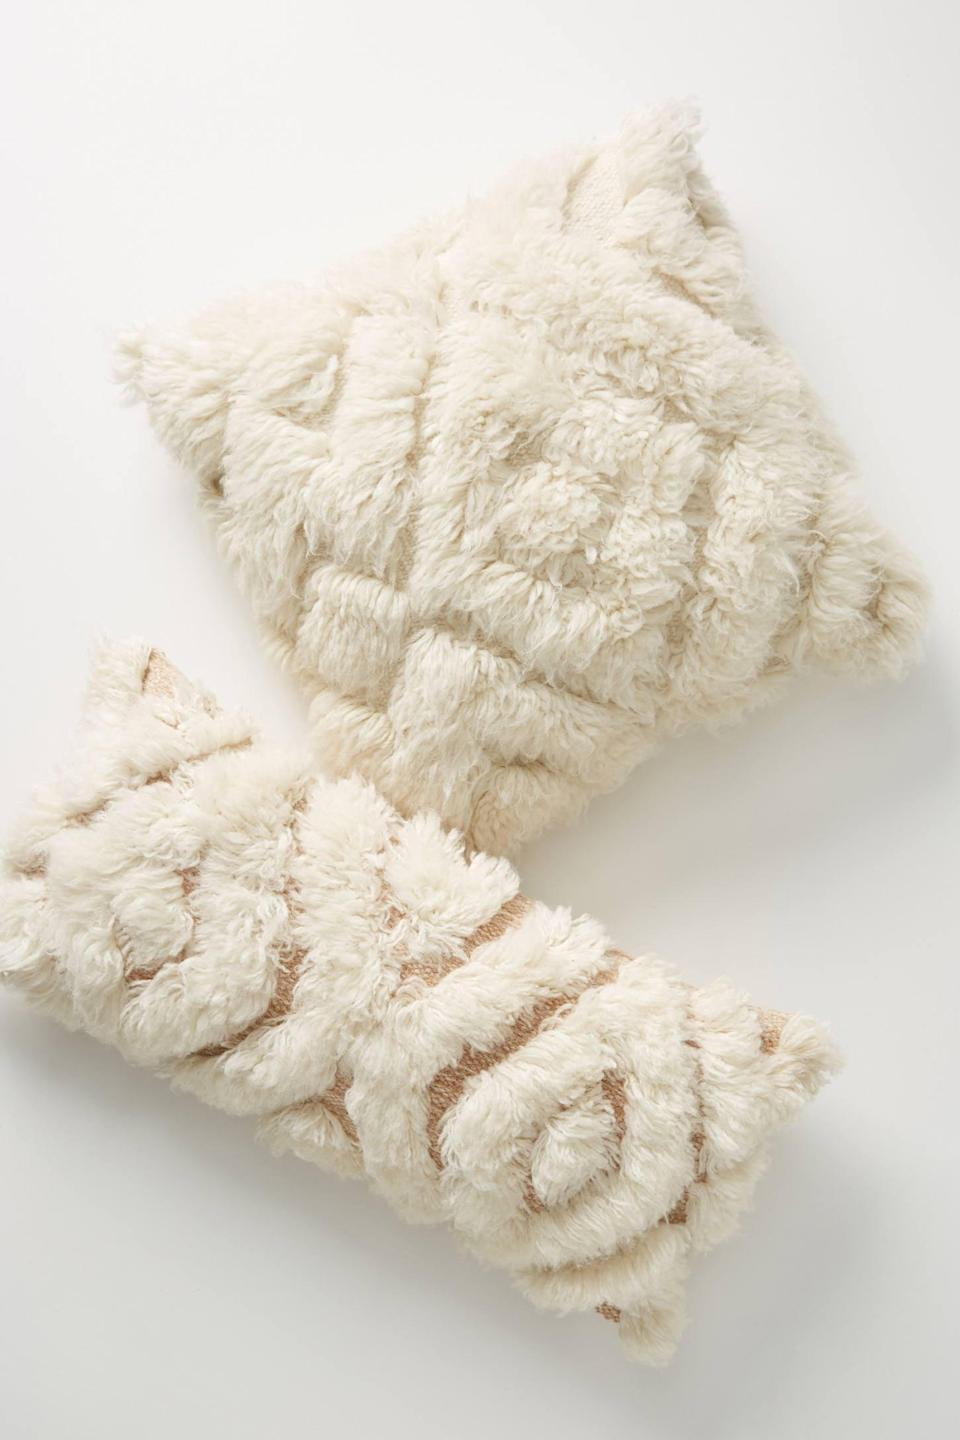 """<p>This soft and fluffy <a href=""""https://www.popsugar.com/buy/Joanna-Gaines-Anthropologie-Wool-Camille-Pillow-559555?p_name=Joanna%20Gaines%20for%20Anthropologie%20Wool%20Camille%20Pillow&retailer=anthropologie.com&pid=559555&price=118&evar1=casa%3Aus&evar9=46598422&evar98=https%3A%2F%2Fwww.popsugar.com%2Fhome%2Fphoto-gallery%2F46598422%2Fimage%2F47342387%2FJoanna-Gaines-for-Anthropologie-Wool-Camille-Pillow&list1=shopping%2Chome%20decor%2Chome%20shopping&prop13=mobile&pdata=1"""" class=""""link rapid-noclick-resp"""" rel=""""nofollow noopener"""" target=""""_blank"""" data-ylk=""""slk:Joanna Gaines for Anthropologie Wool Camille Pillow"""">Joanna Gaines for Anthropologie Wool Camille Pillow</a> ($118) is what your sofa needs.</p>"""